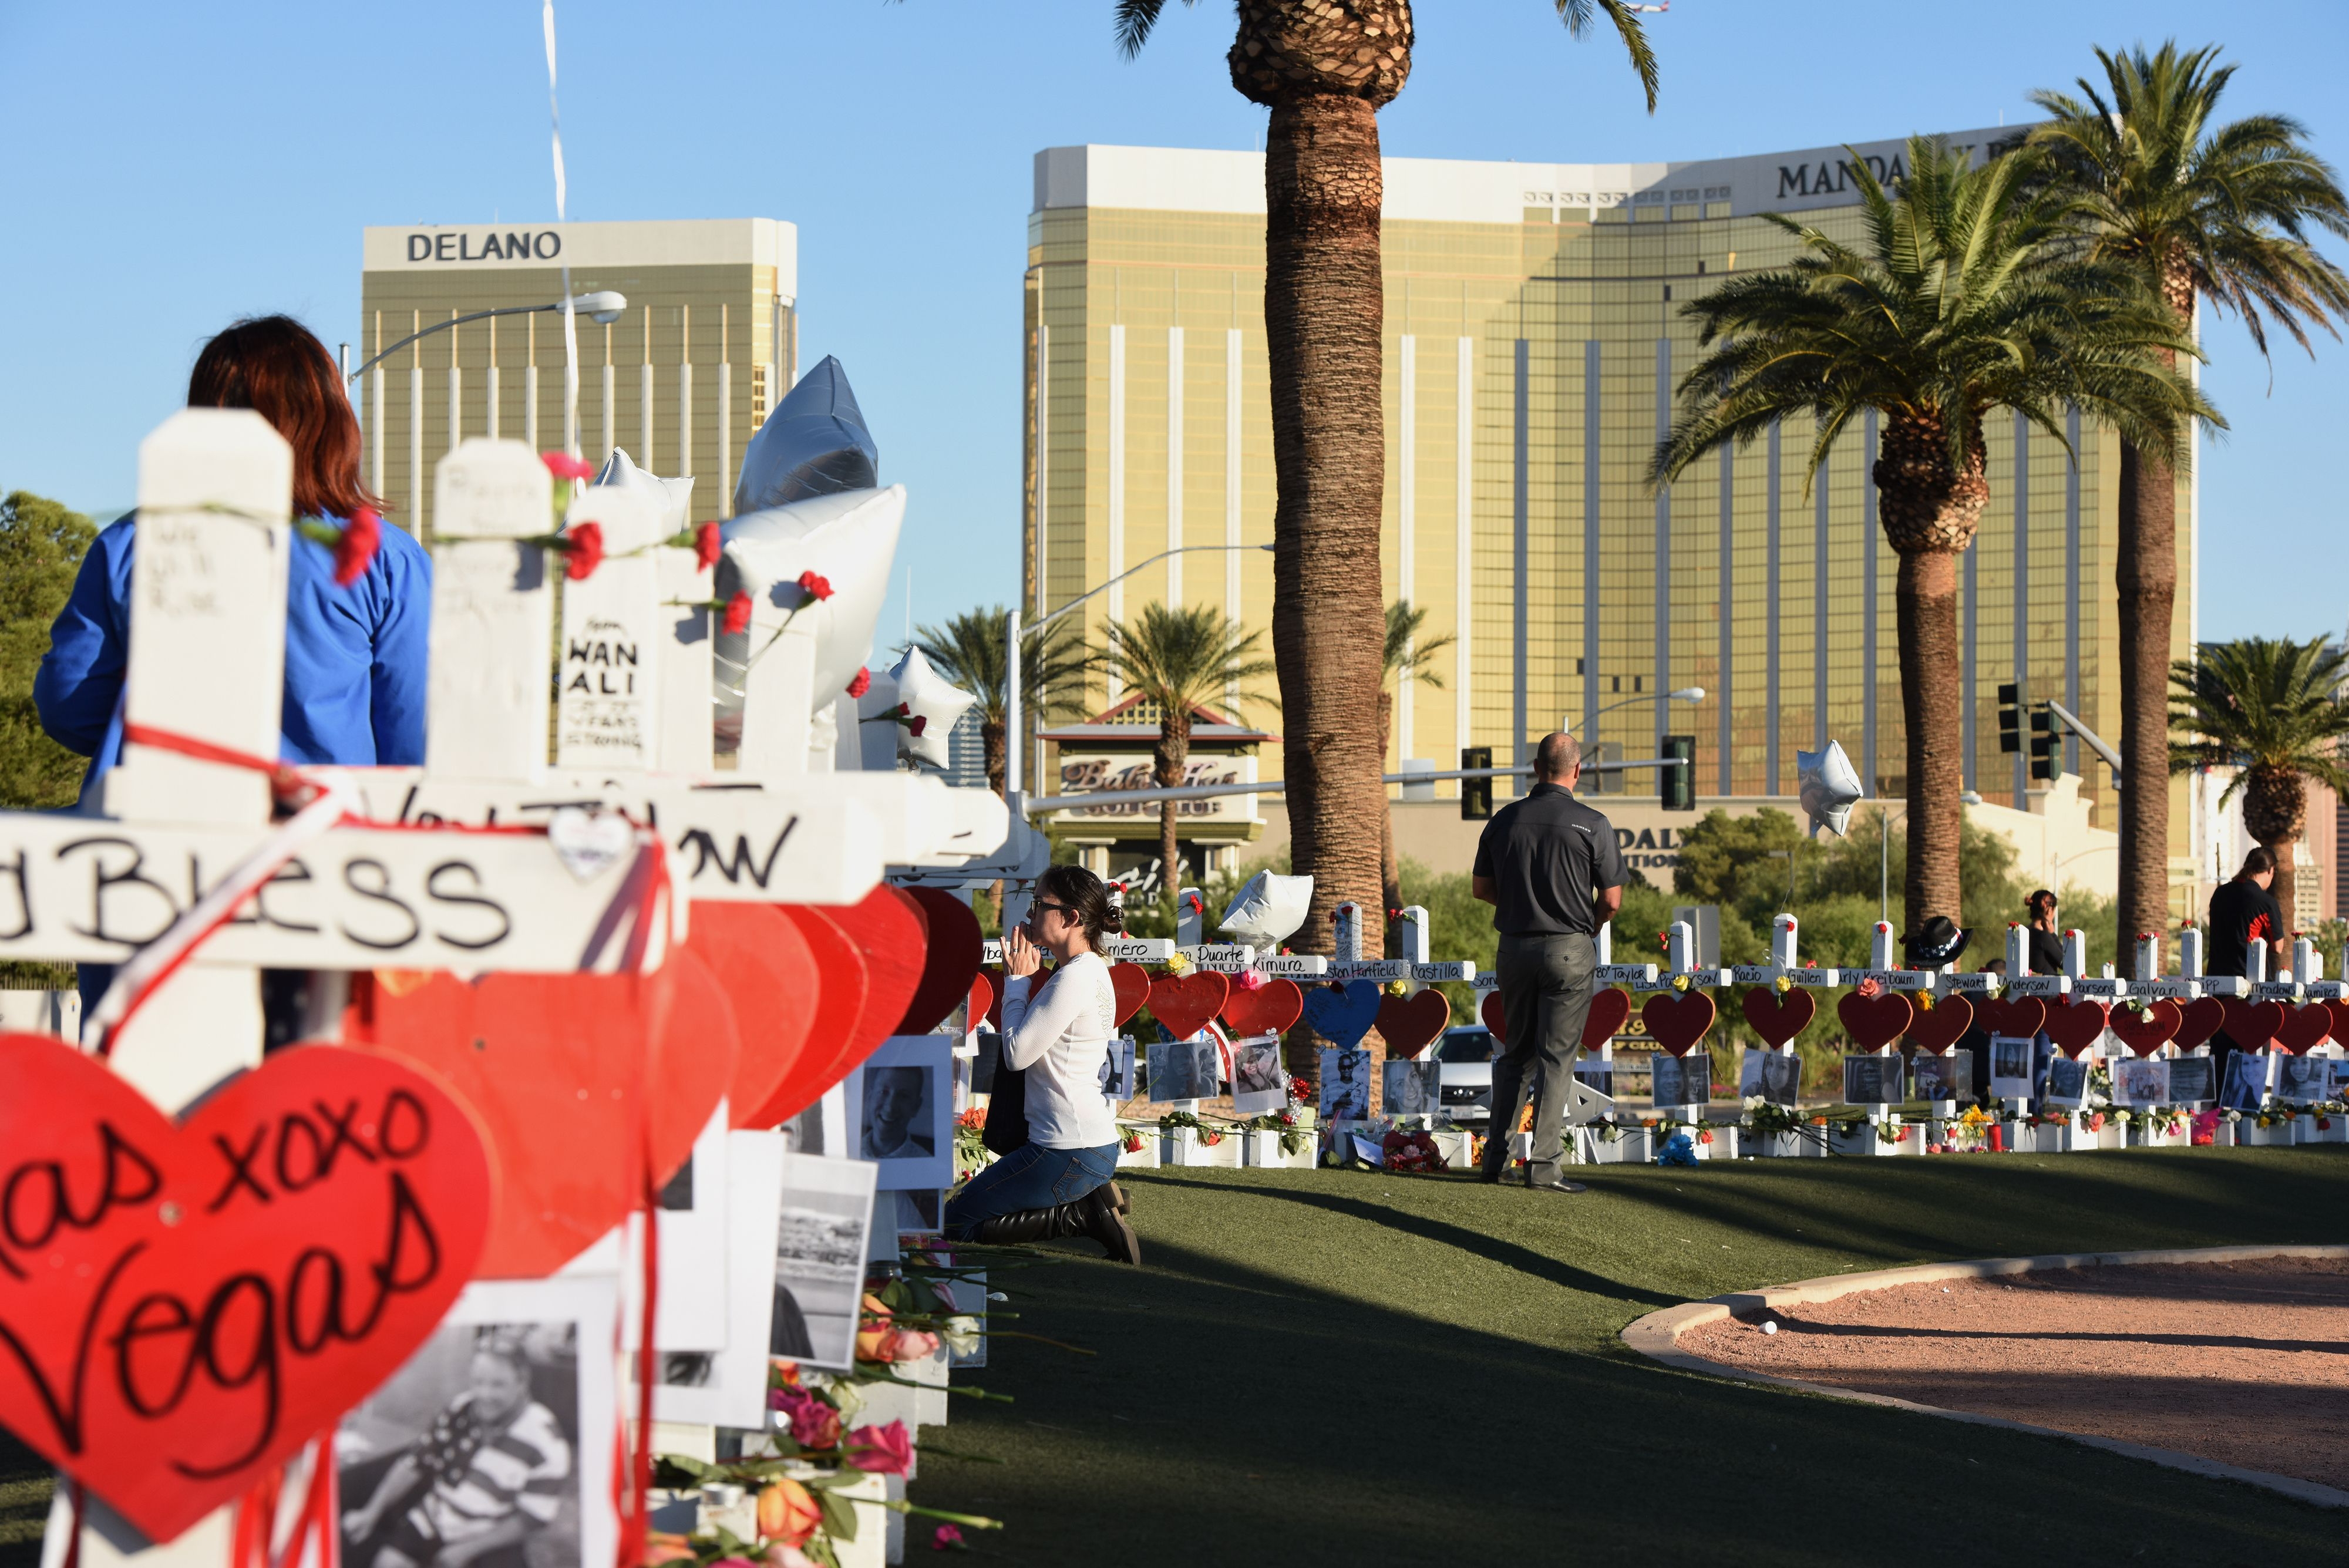 A woman prays beside 58 white crosses for the victims of the mass shooting on the Las Vegas Strip just south of the Mandalay Bay hotel, October 6, 2017. (Robyn Beck/AFP/Getty Images)